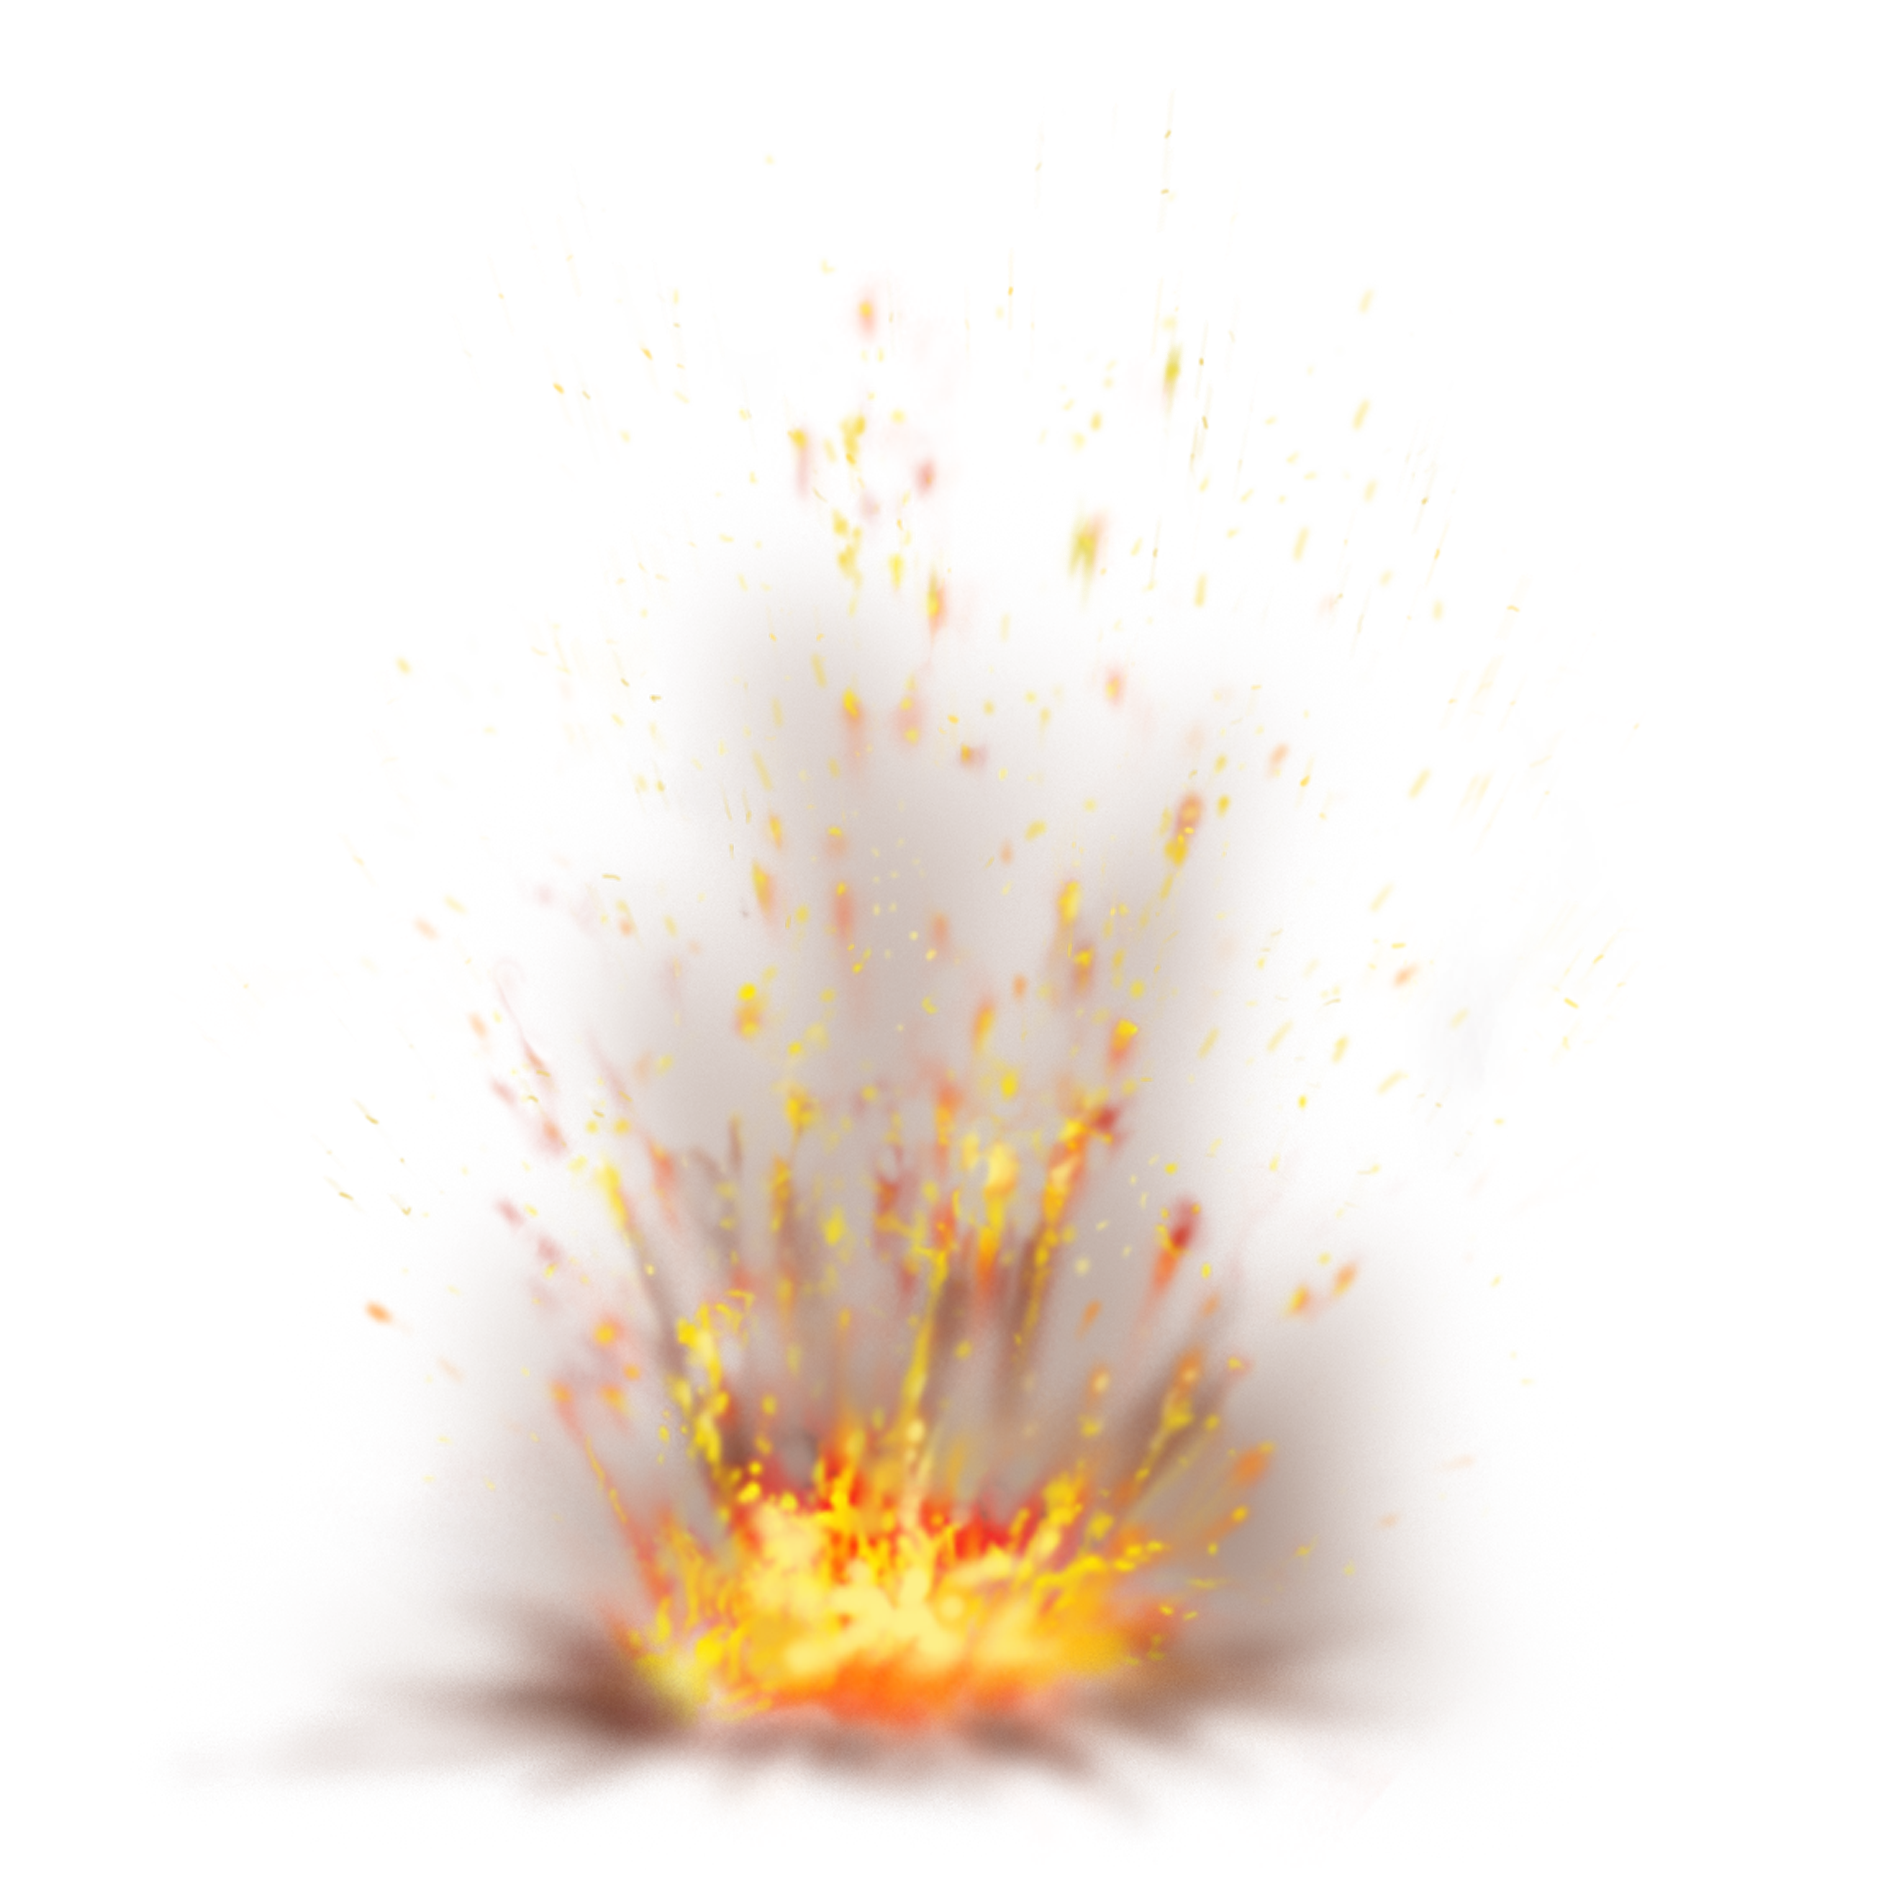 Flame clipart clear background. Fire smoke transparent png